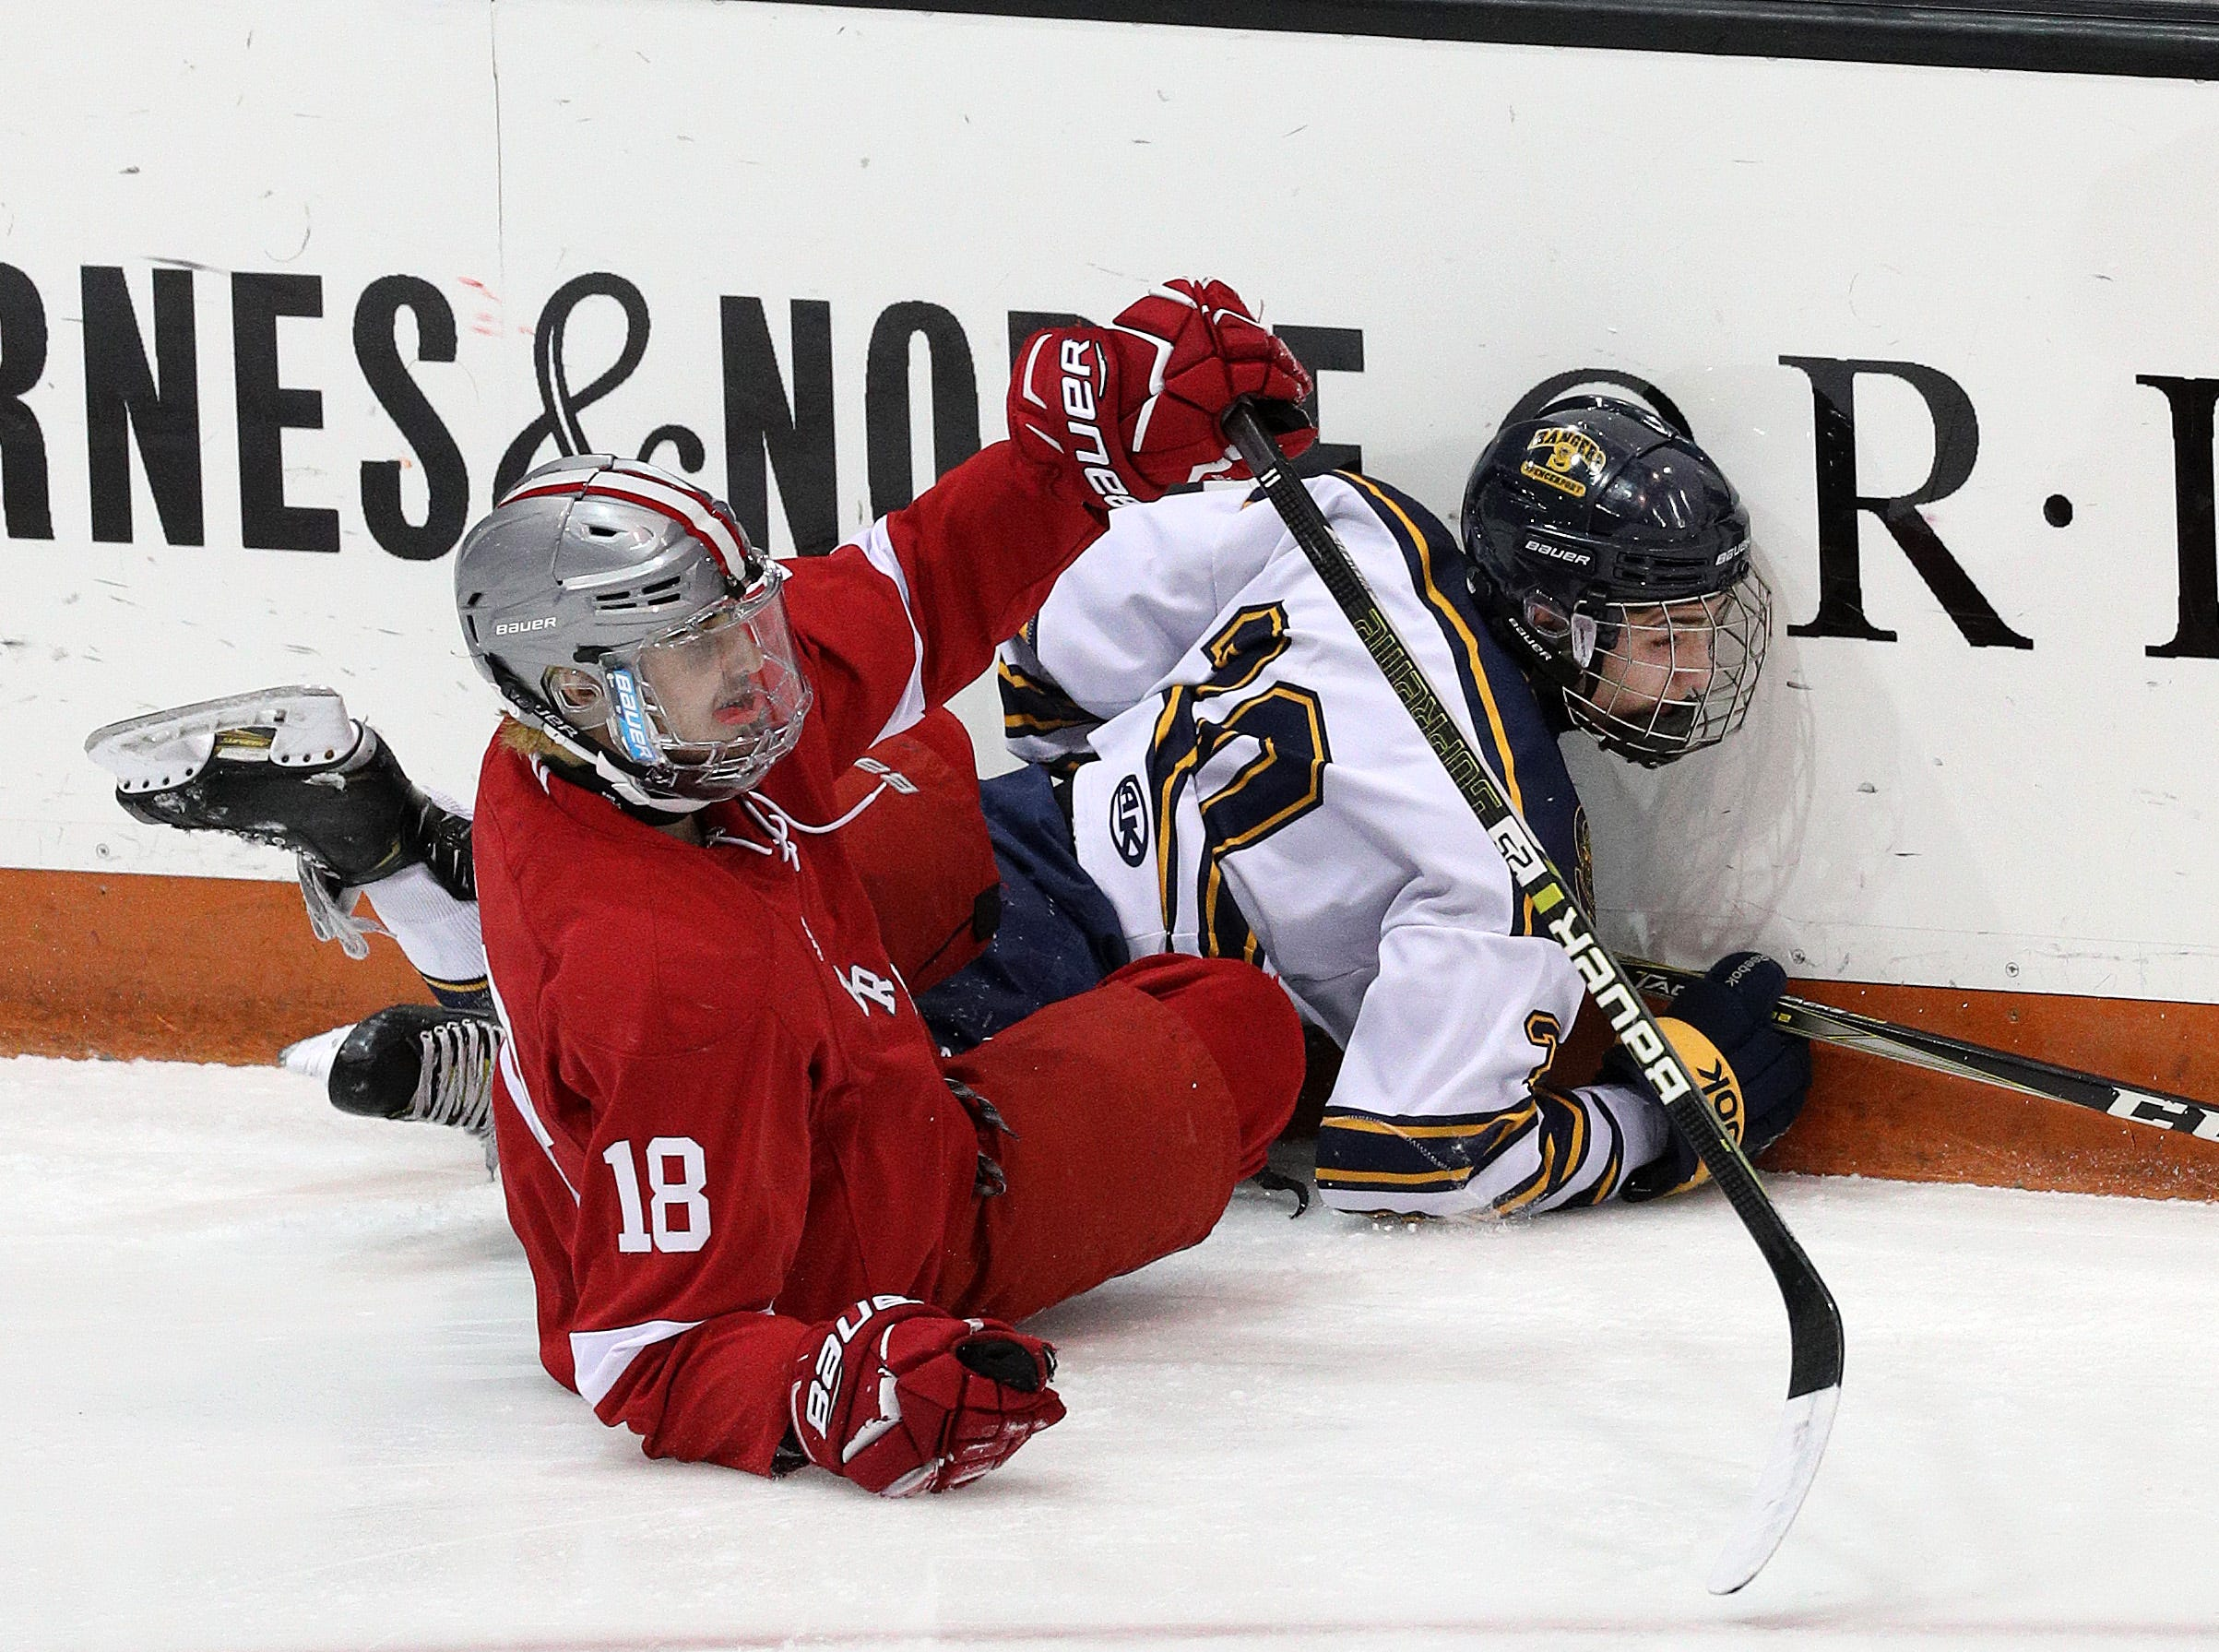 Spencerport's AJ Giannavola is checked into the boards by Canandaigua's Michael Cichetti.